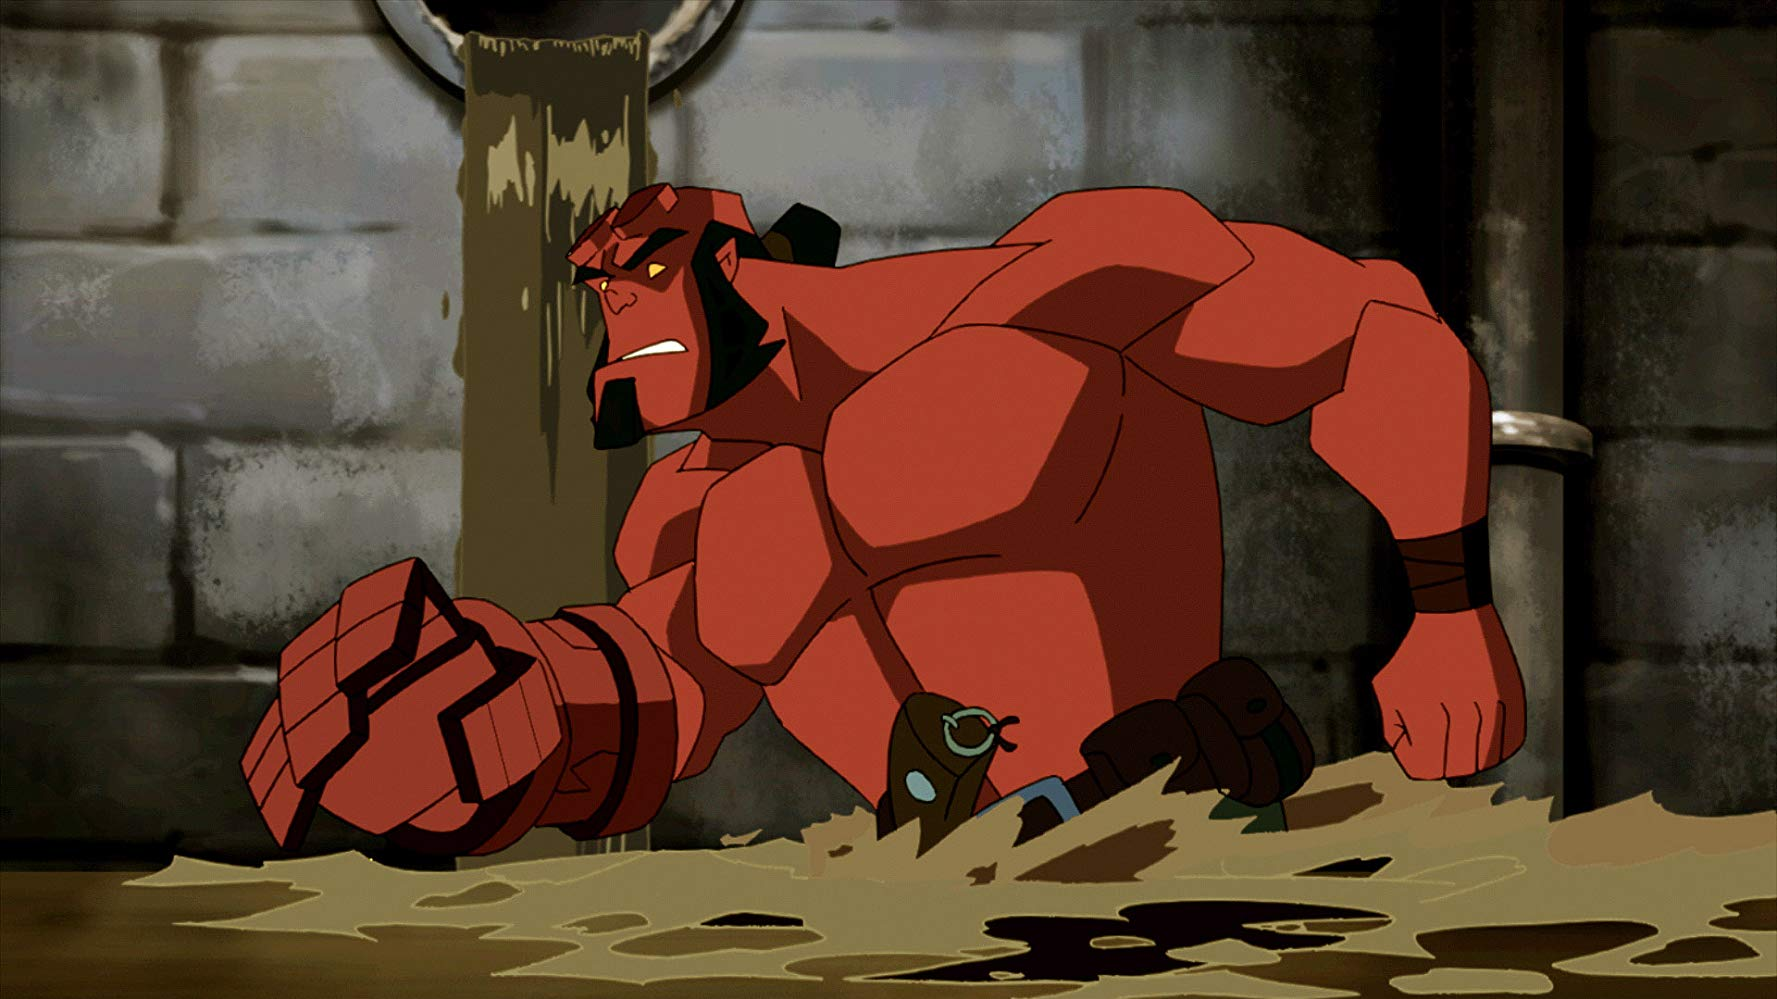 [Home Video Release] HELLBOY ANIMATED: SWORD OF STORMS AND BLOOD & IRON Arrives on 4K Ultra HD Combo Pack April 2